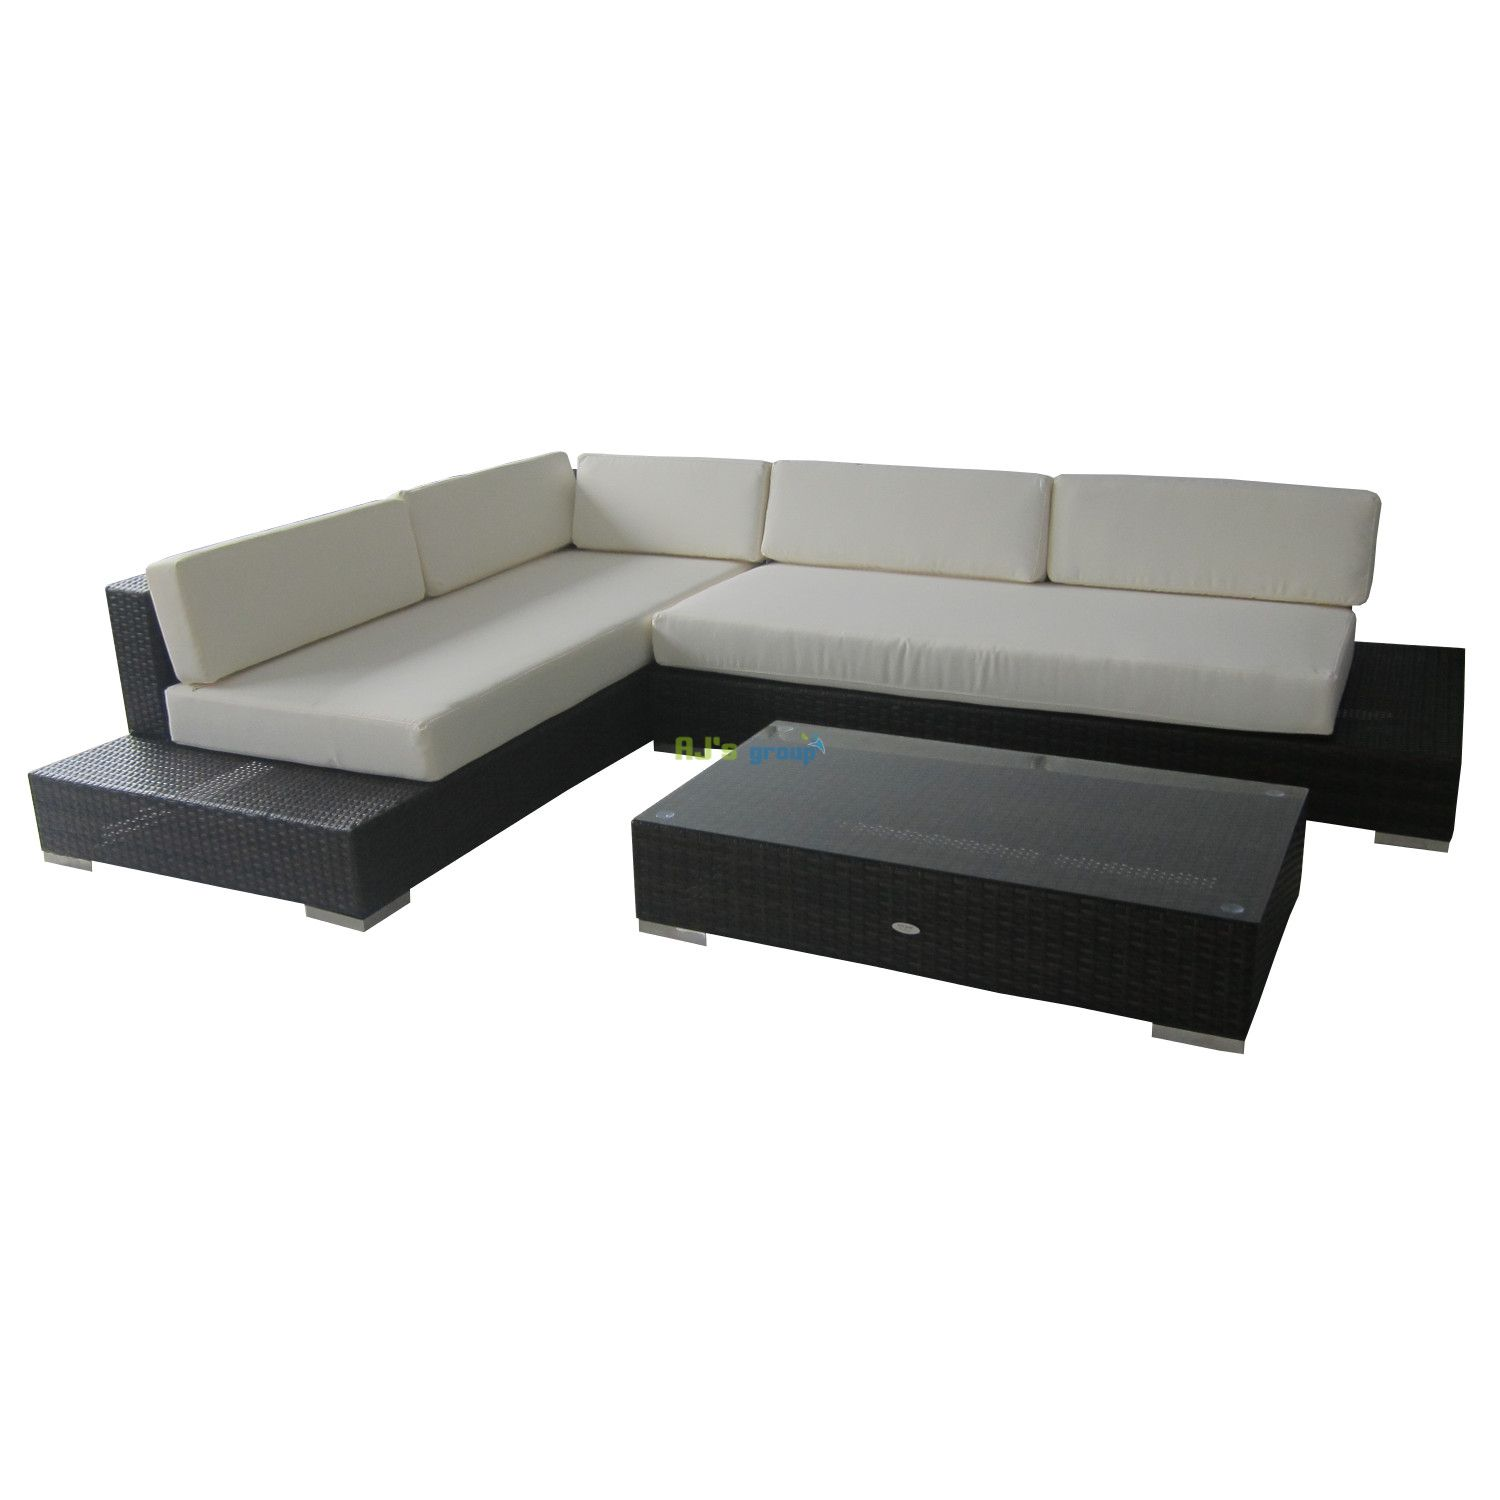 poly rattan gartenm bel kenia alu garnitur lounge garten sitzgru. Black Bedroom Furniture Sets. Home Design Ideas